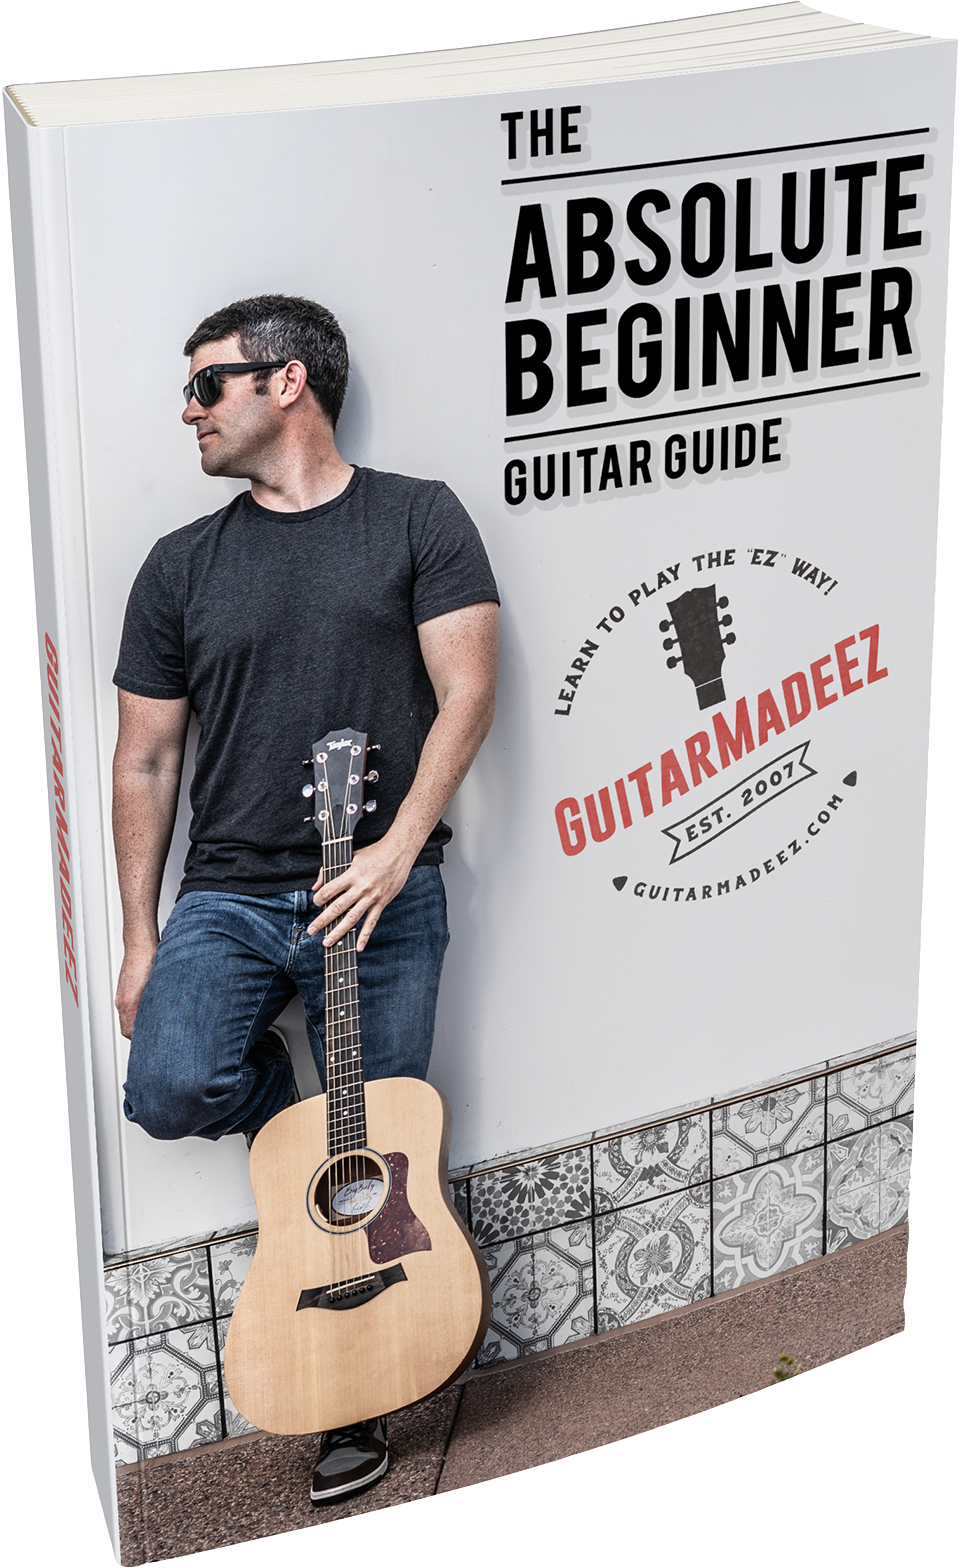 Absolute Beginner Guitar Guide Photo